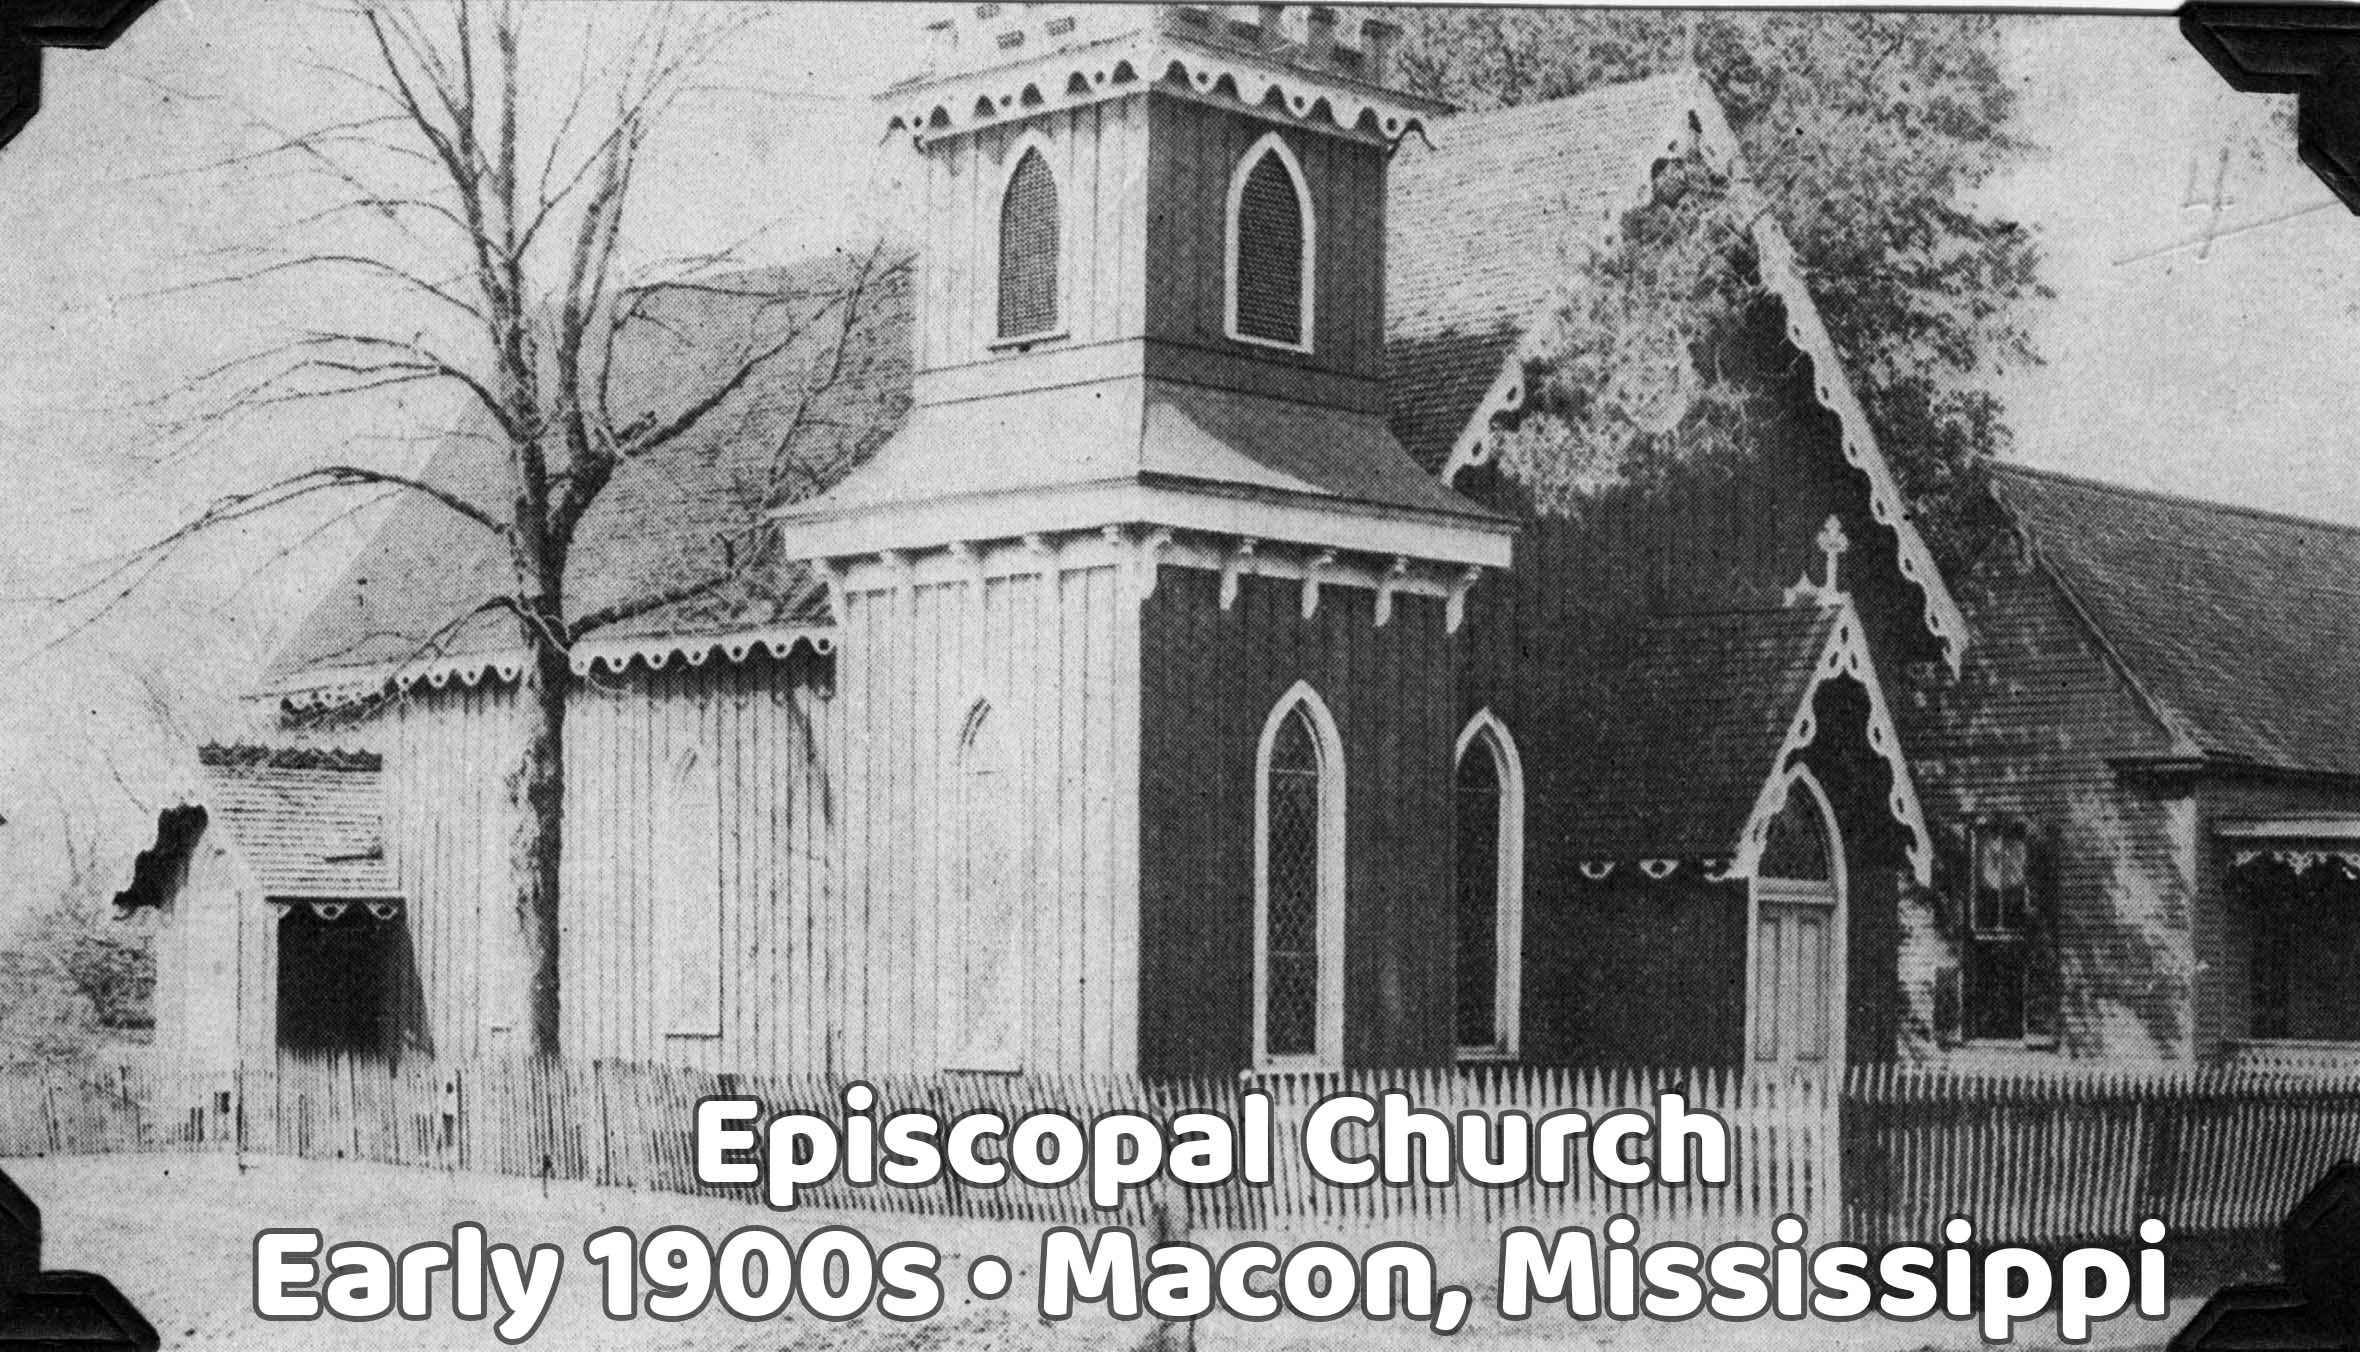 Old Episcopal Church in Macon, Mississippi